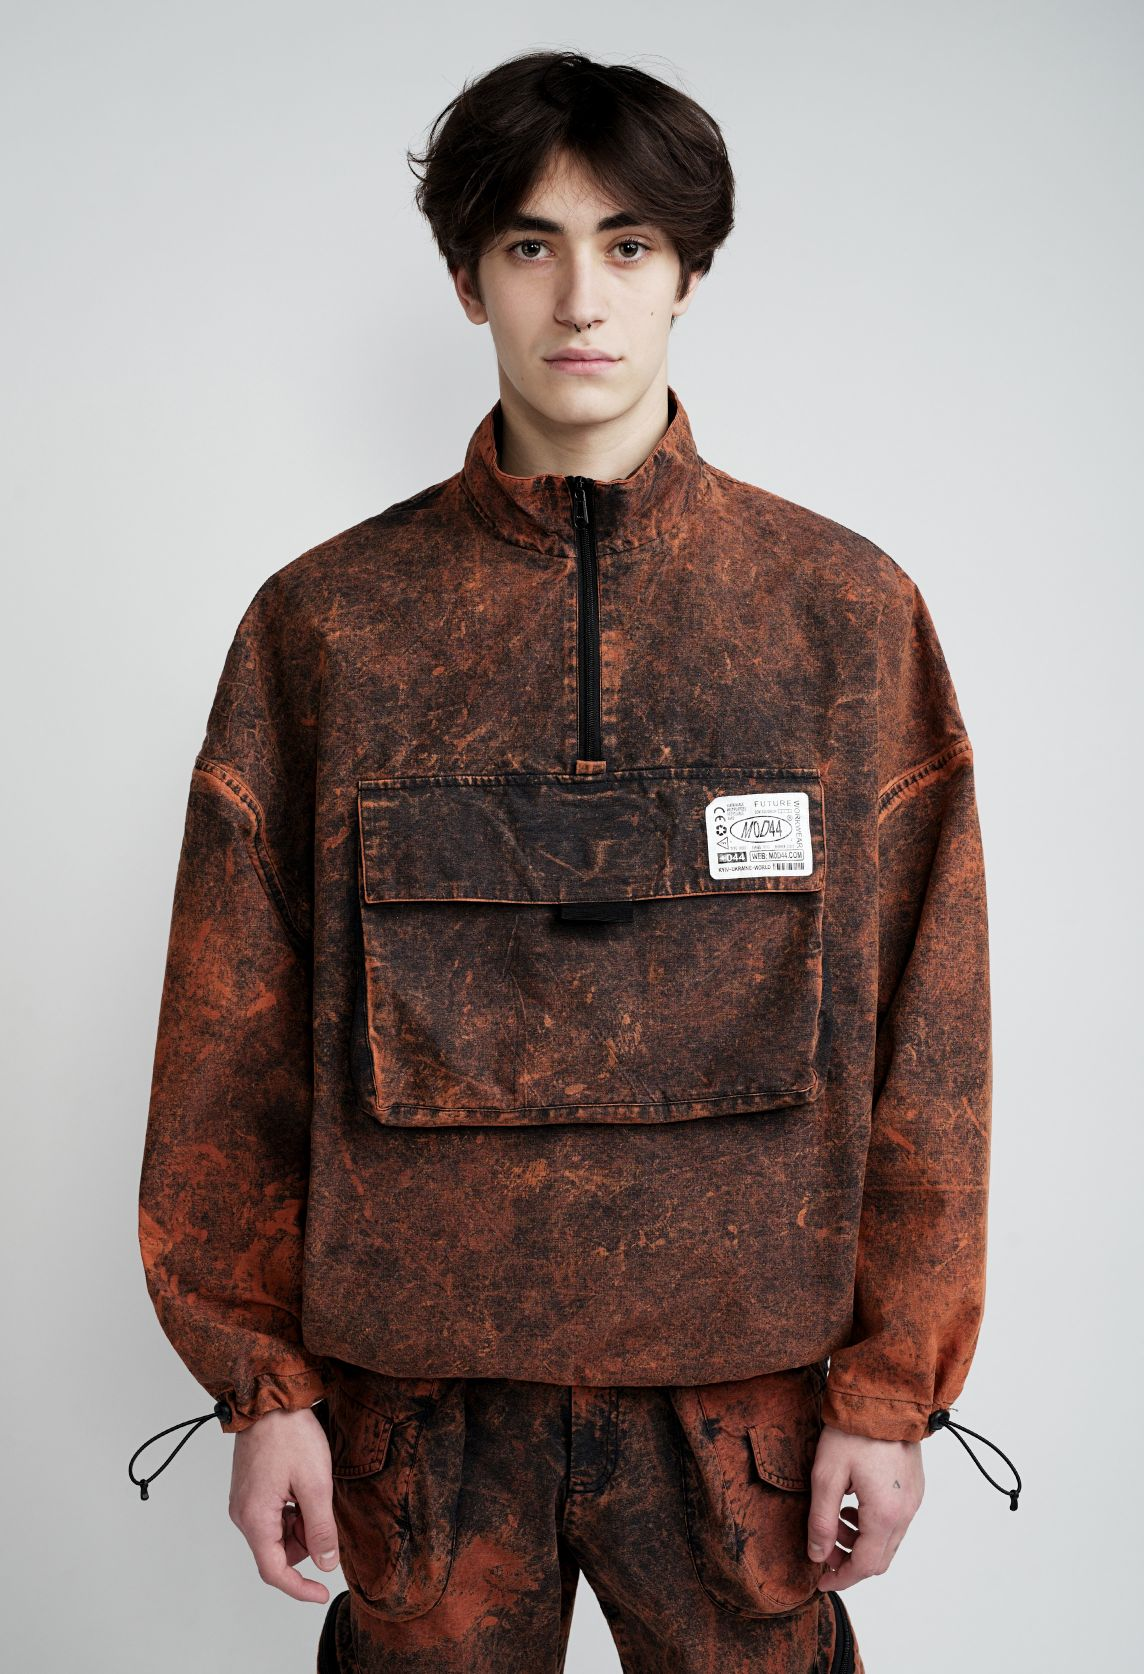 Paradigm Melting Jacket